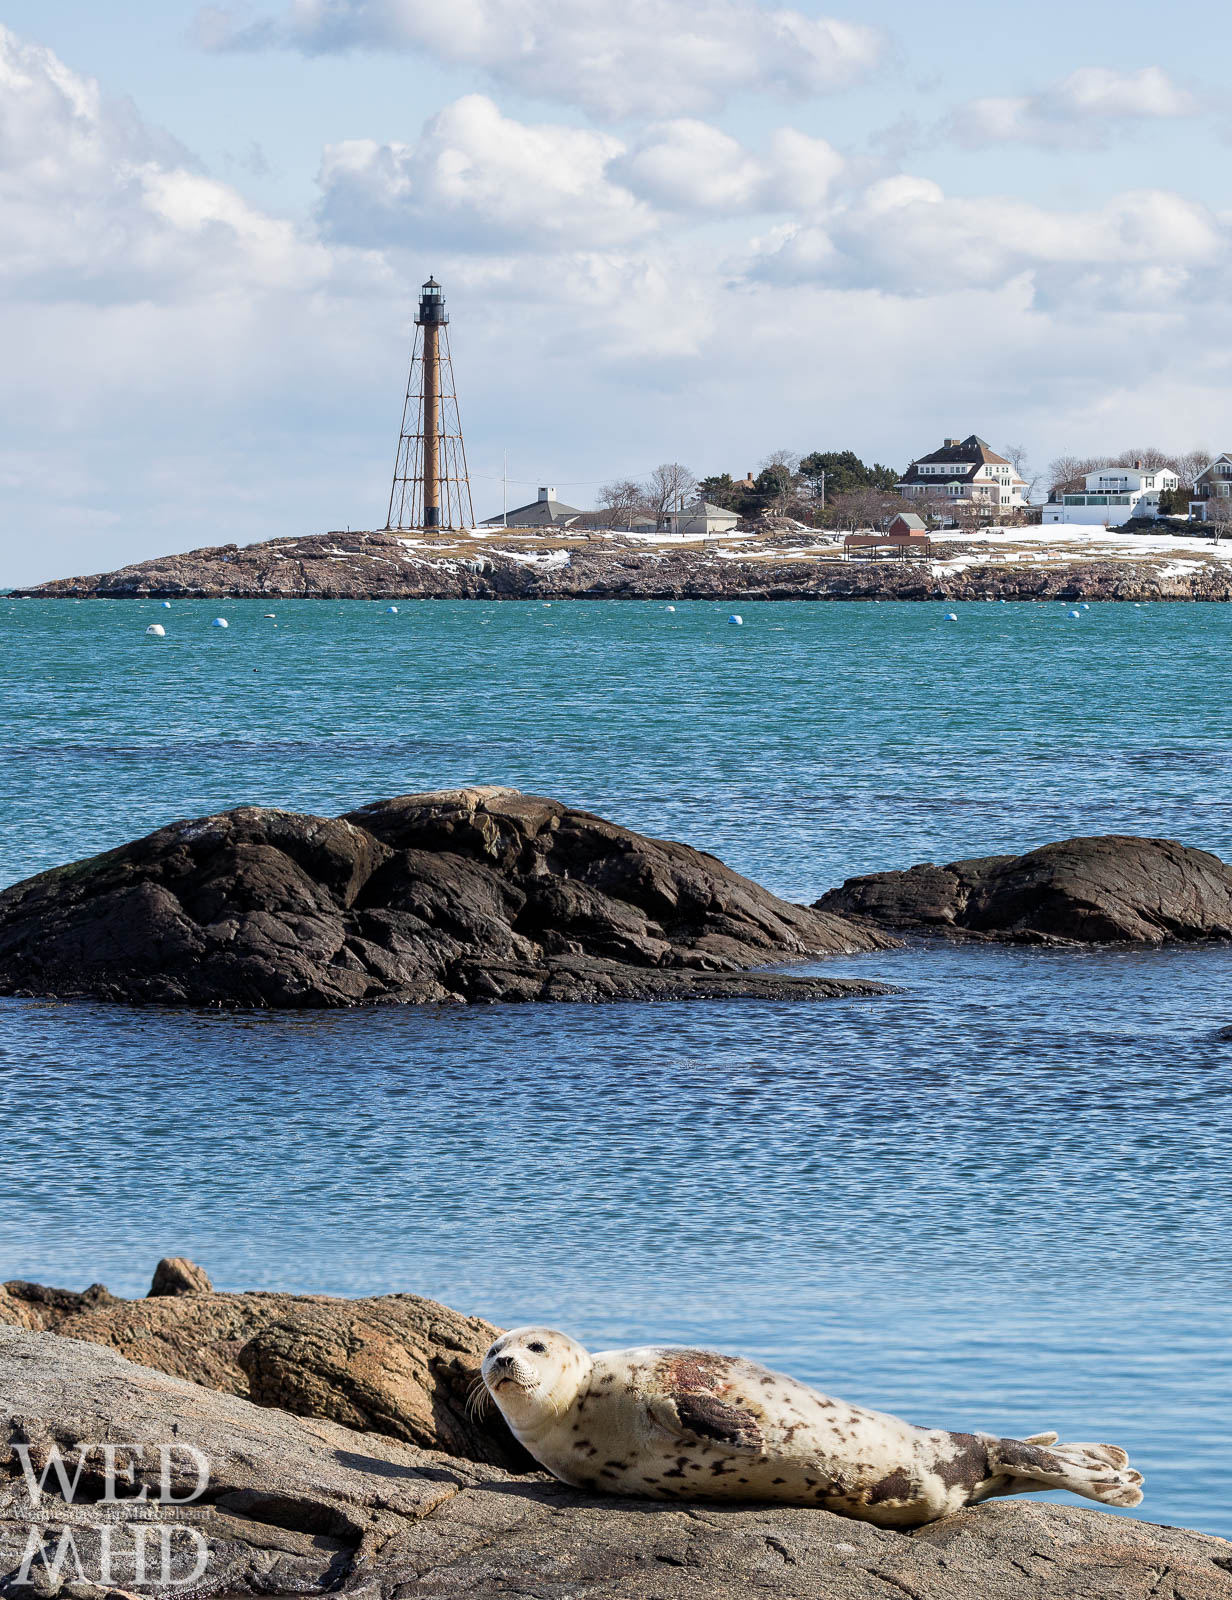 Seal beach in Marblehead takes shape as a seal pup basks in the sun on the rocks at Fort Beach with Marblehead Light in the distance